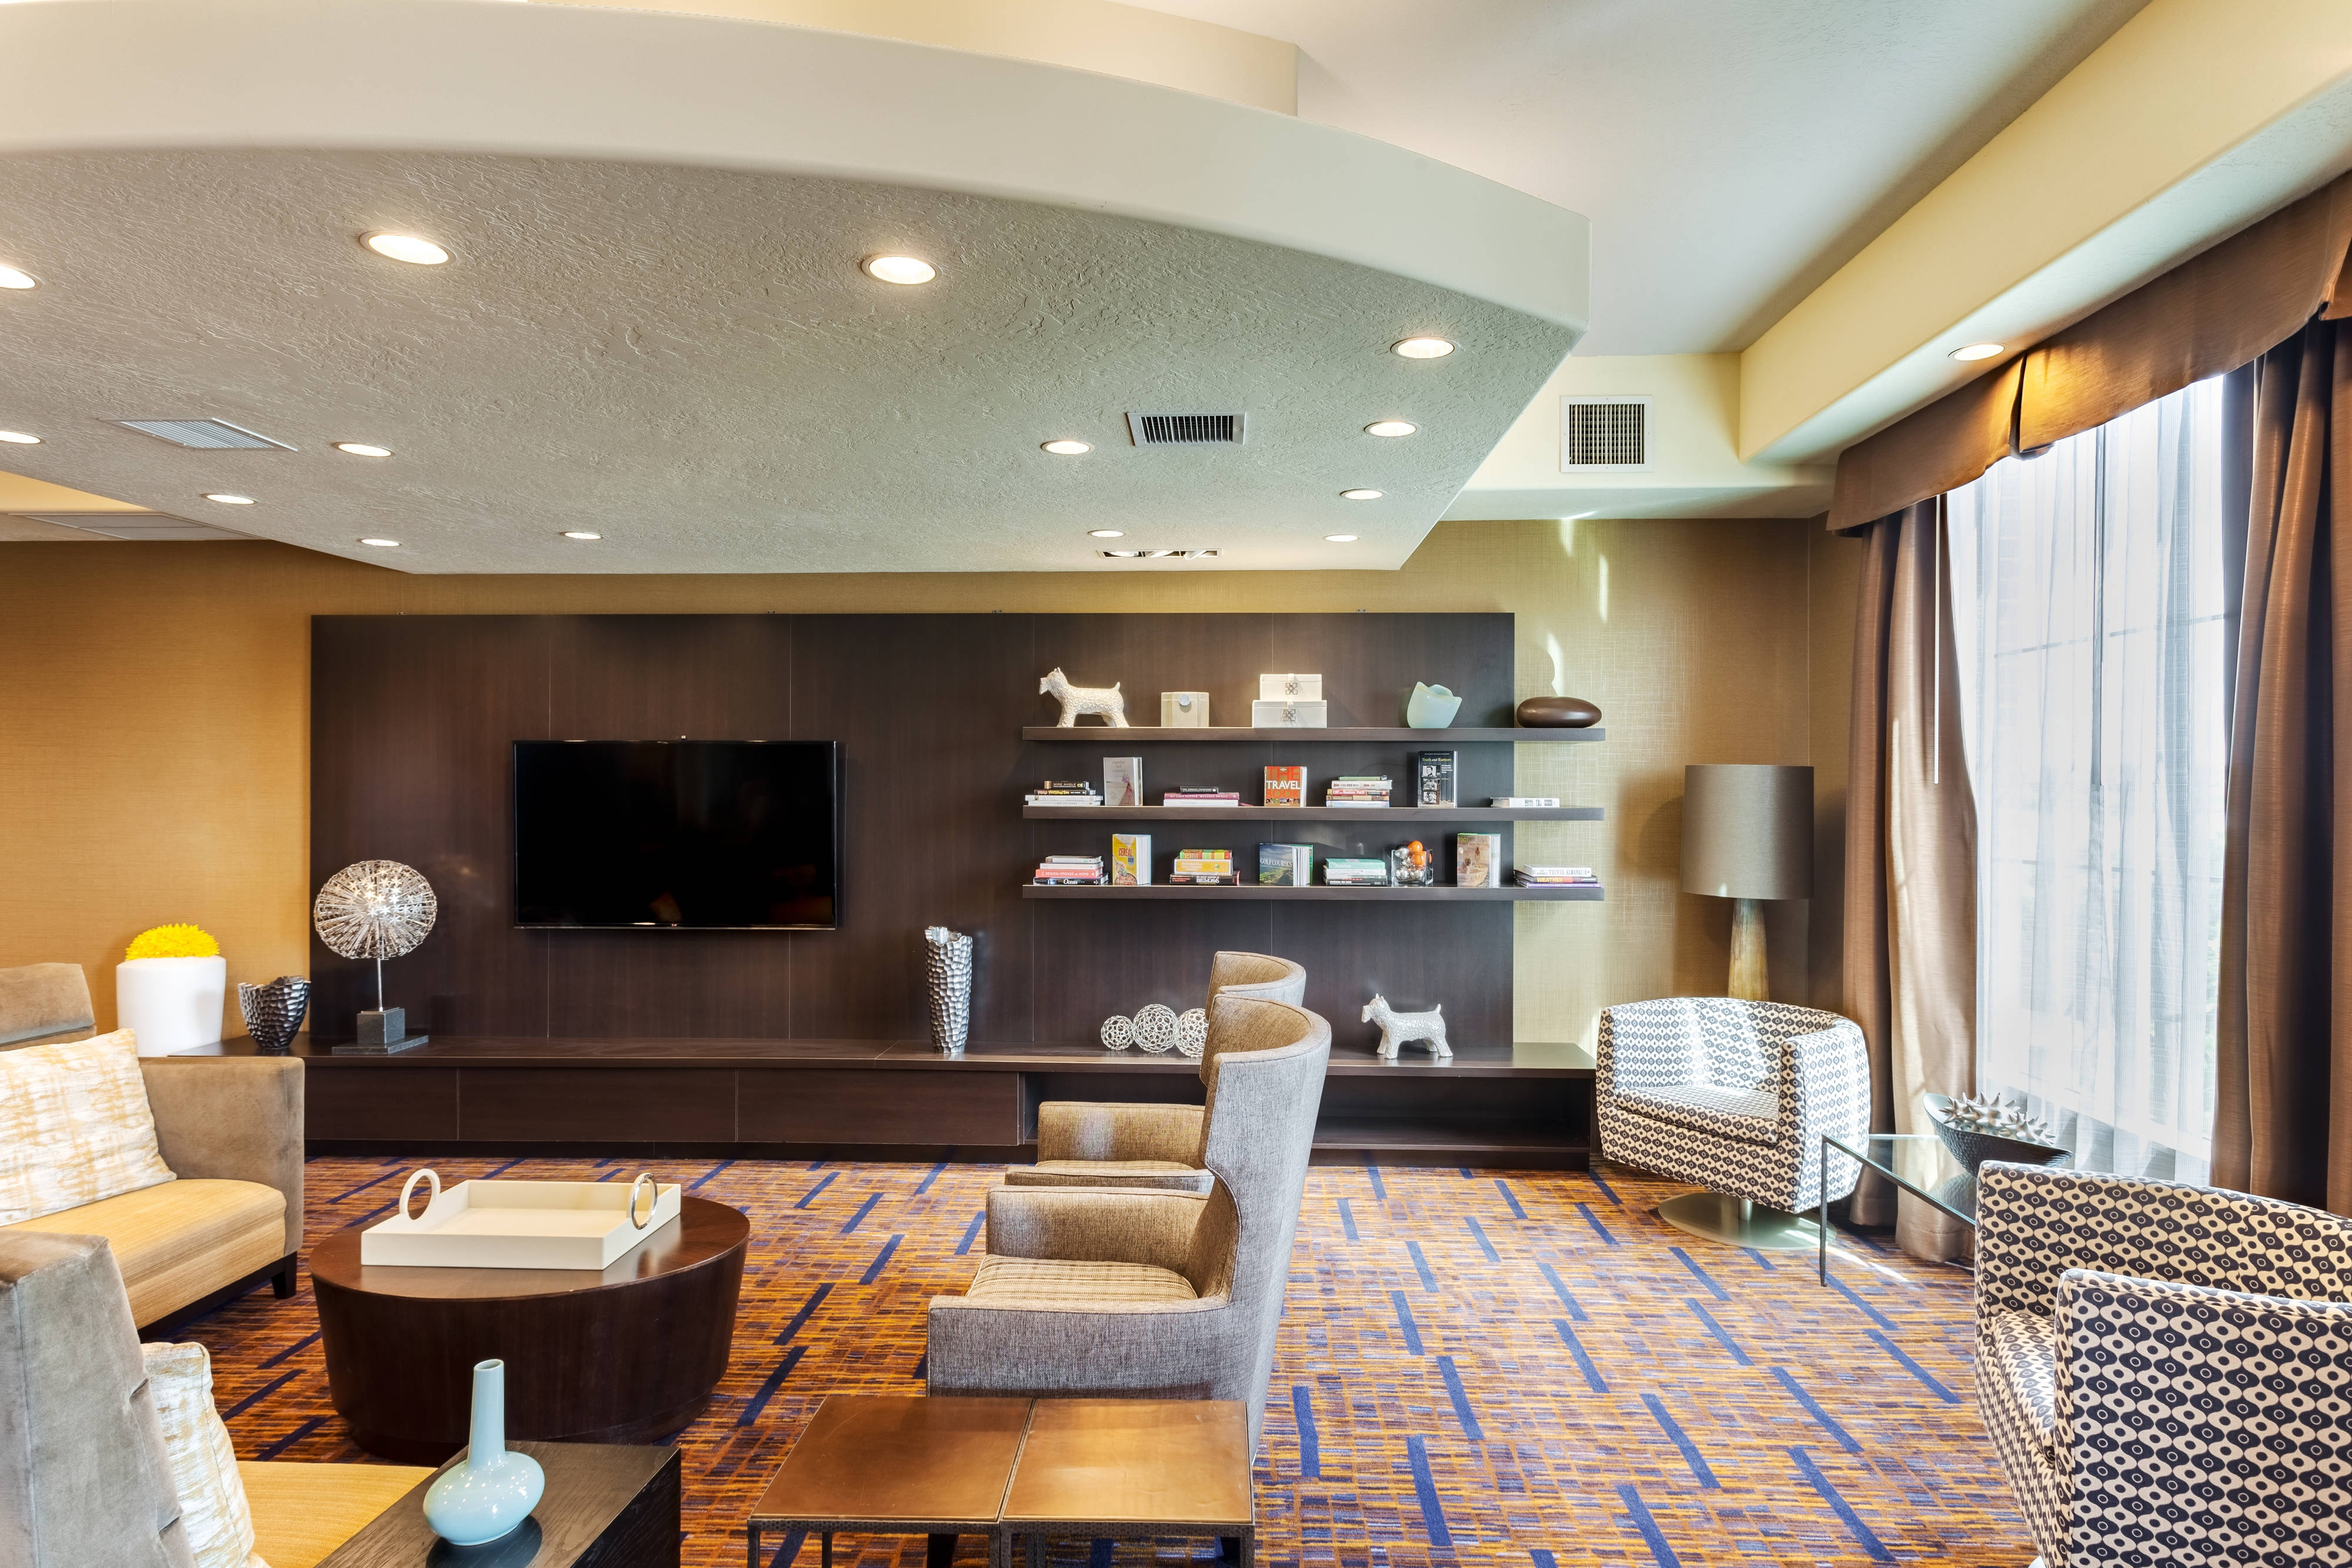 Courtyard by Marriott Richland